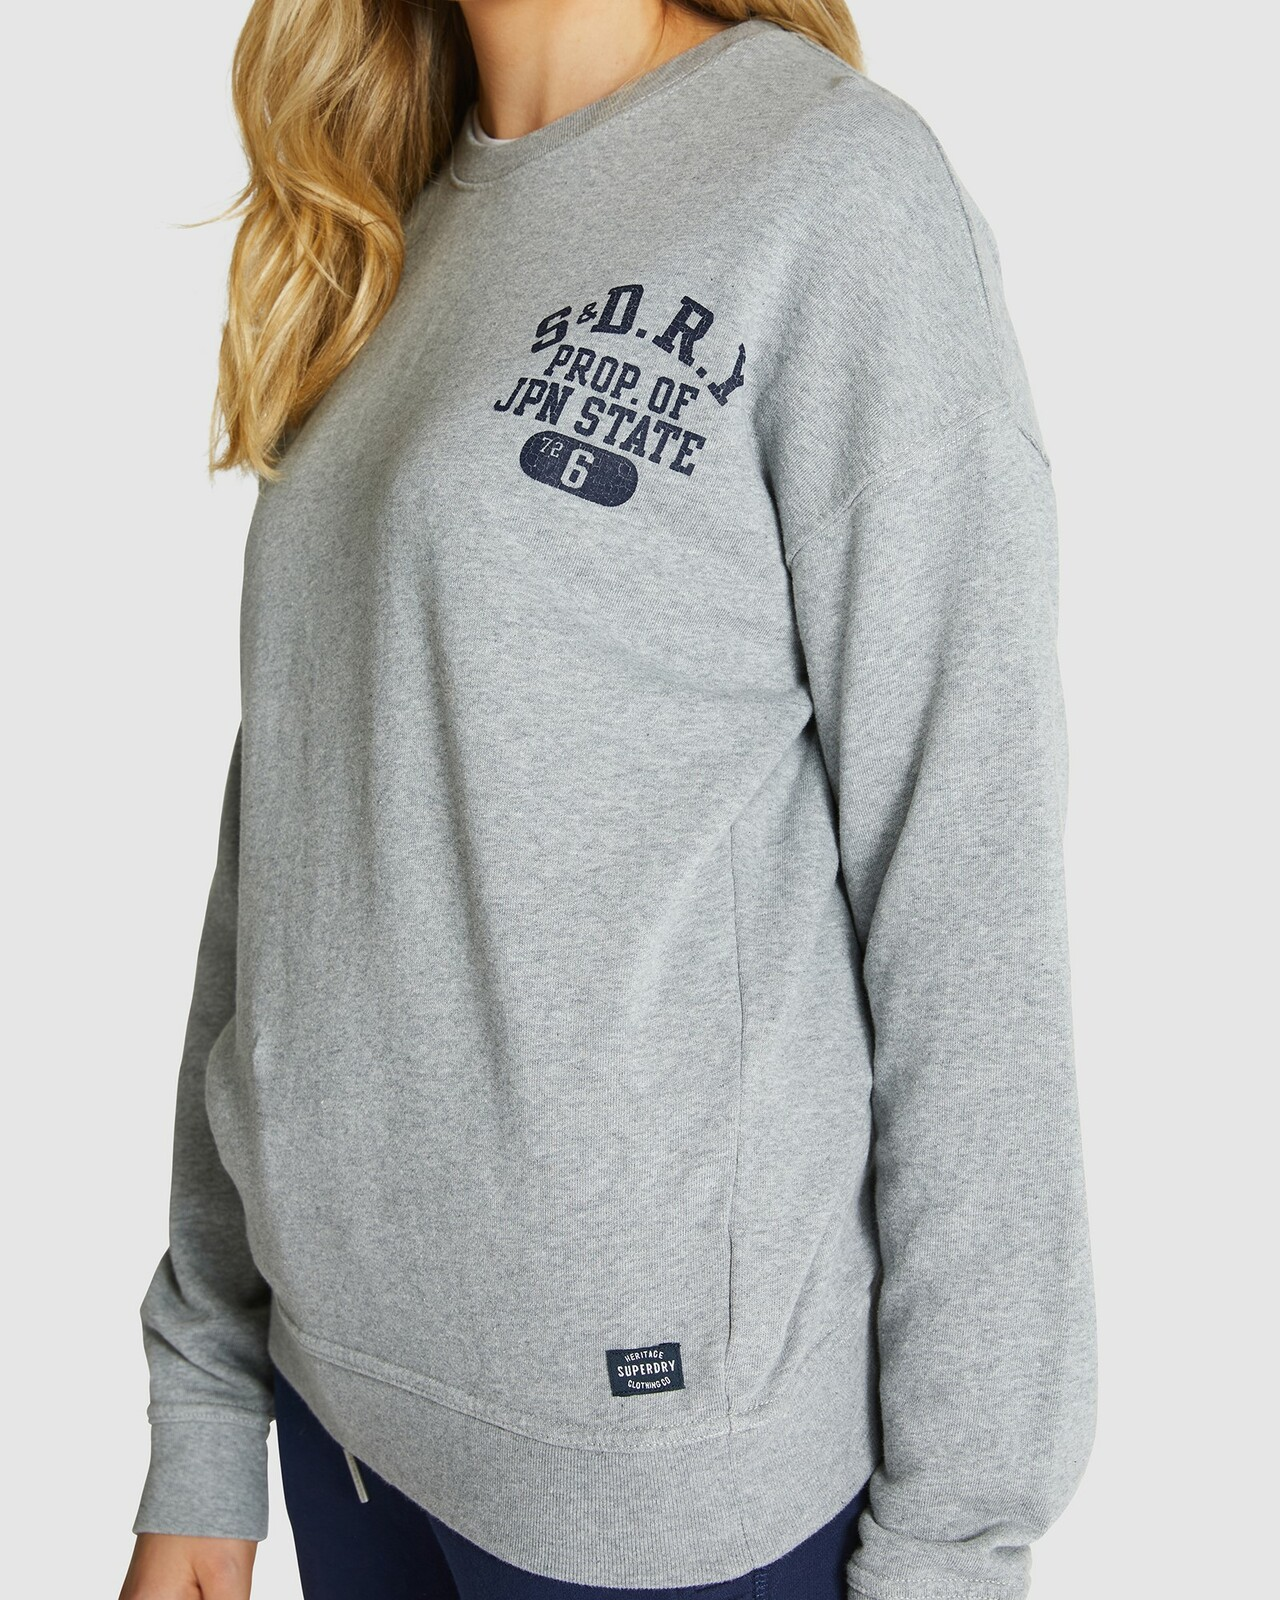 Superdry Womens SUPERSTATE SWEAT Grey Sweat Tops 3